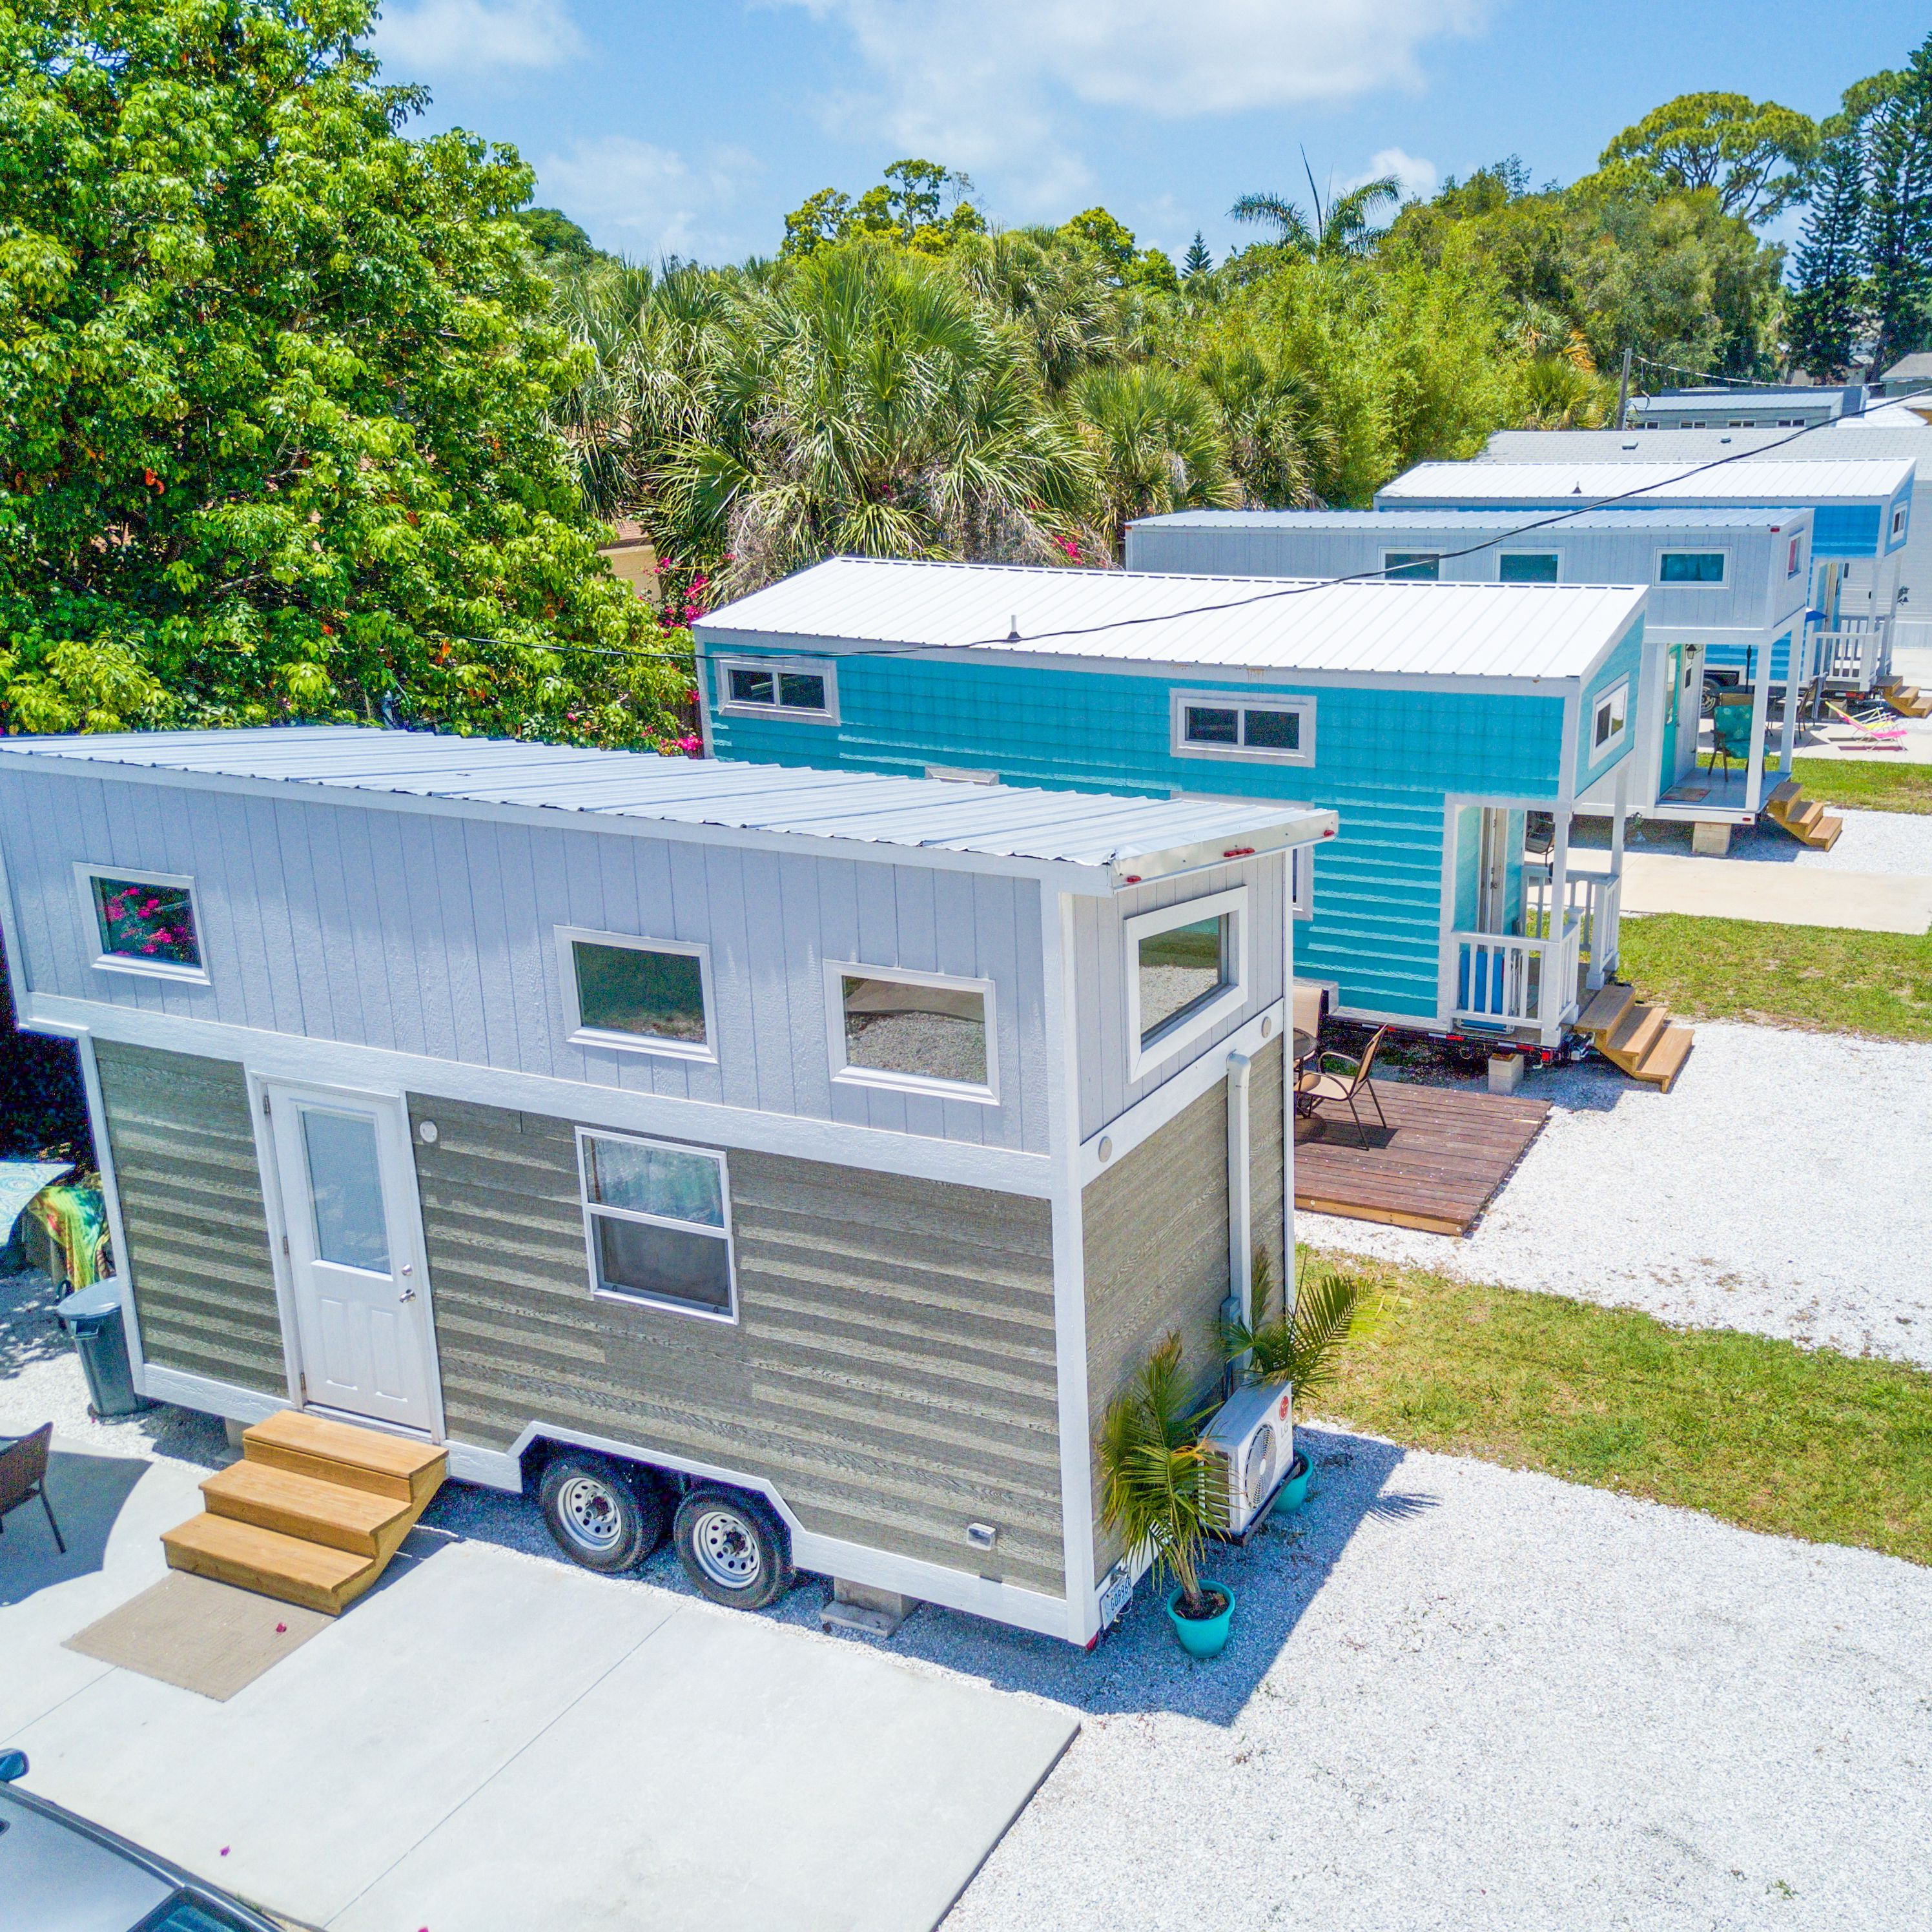 Tiny houses on the beach in florida - Tiny Houses By Siesta Key Sarasota Fl Take A Tiny House Siesta We Are Now Offering Tiny House Vacation Rentals Near The 1 Beach In The Us Siesta Key